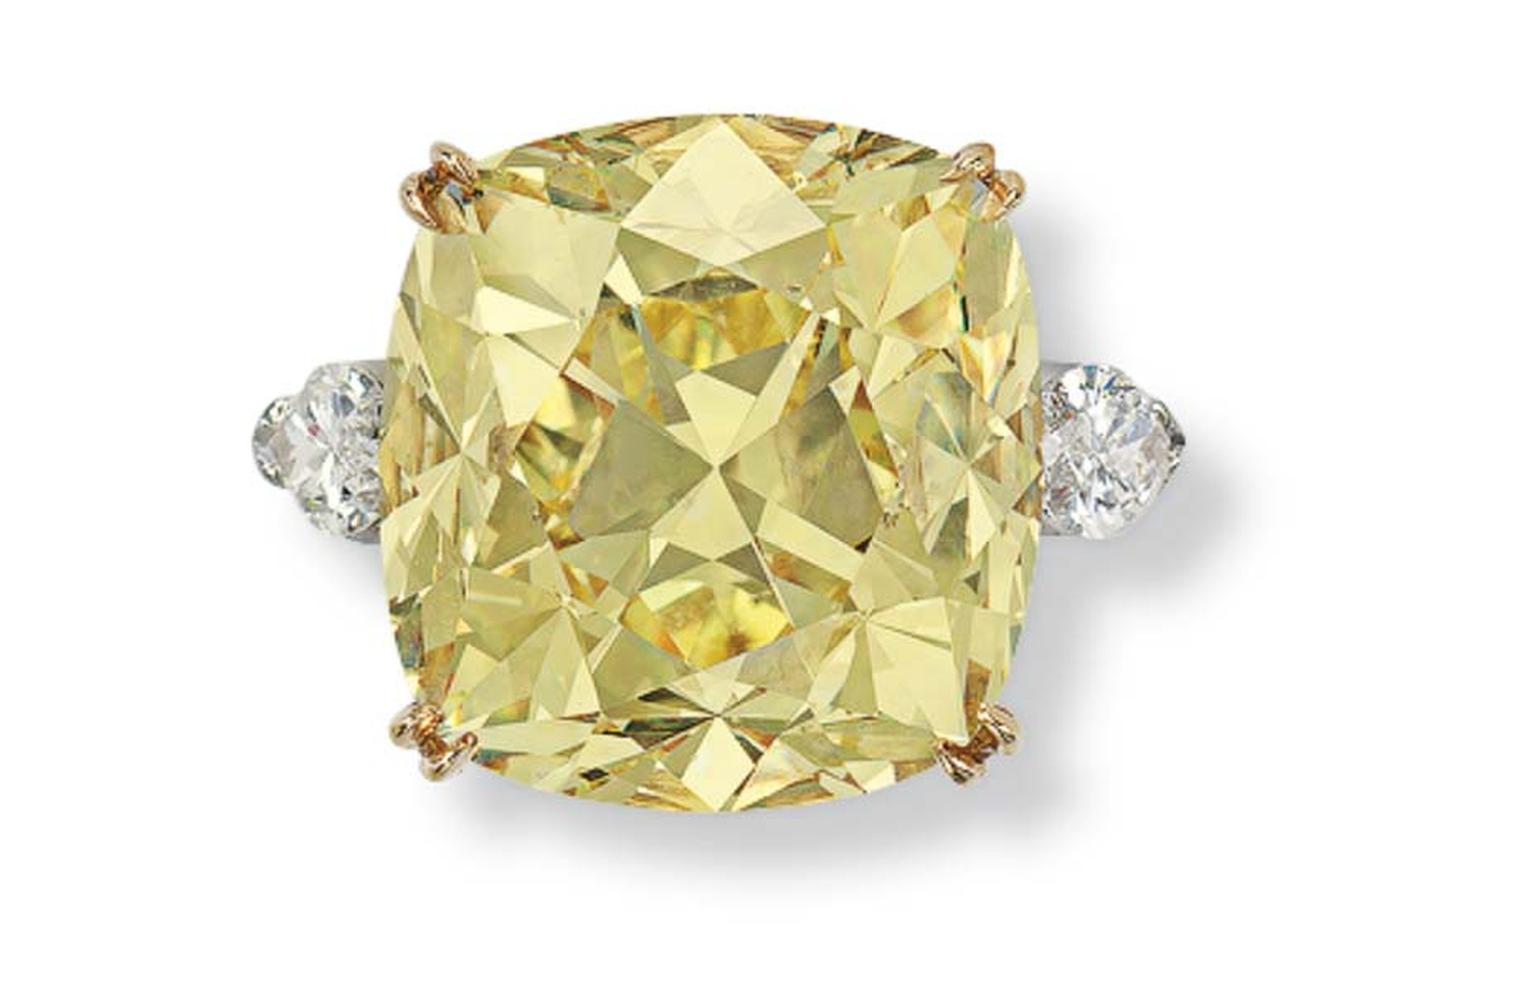 The cushion-cut Fancy Intense 36.09ct Yellow Diamond ring by Graff sold for US$173,000 at Christie's sale of Important Jewels.